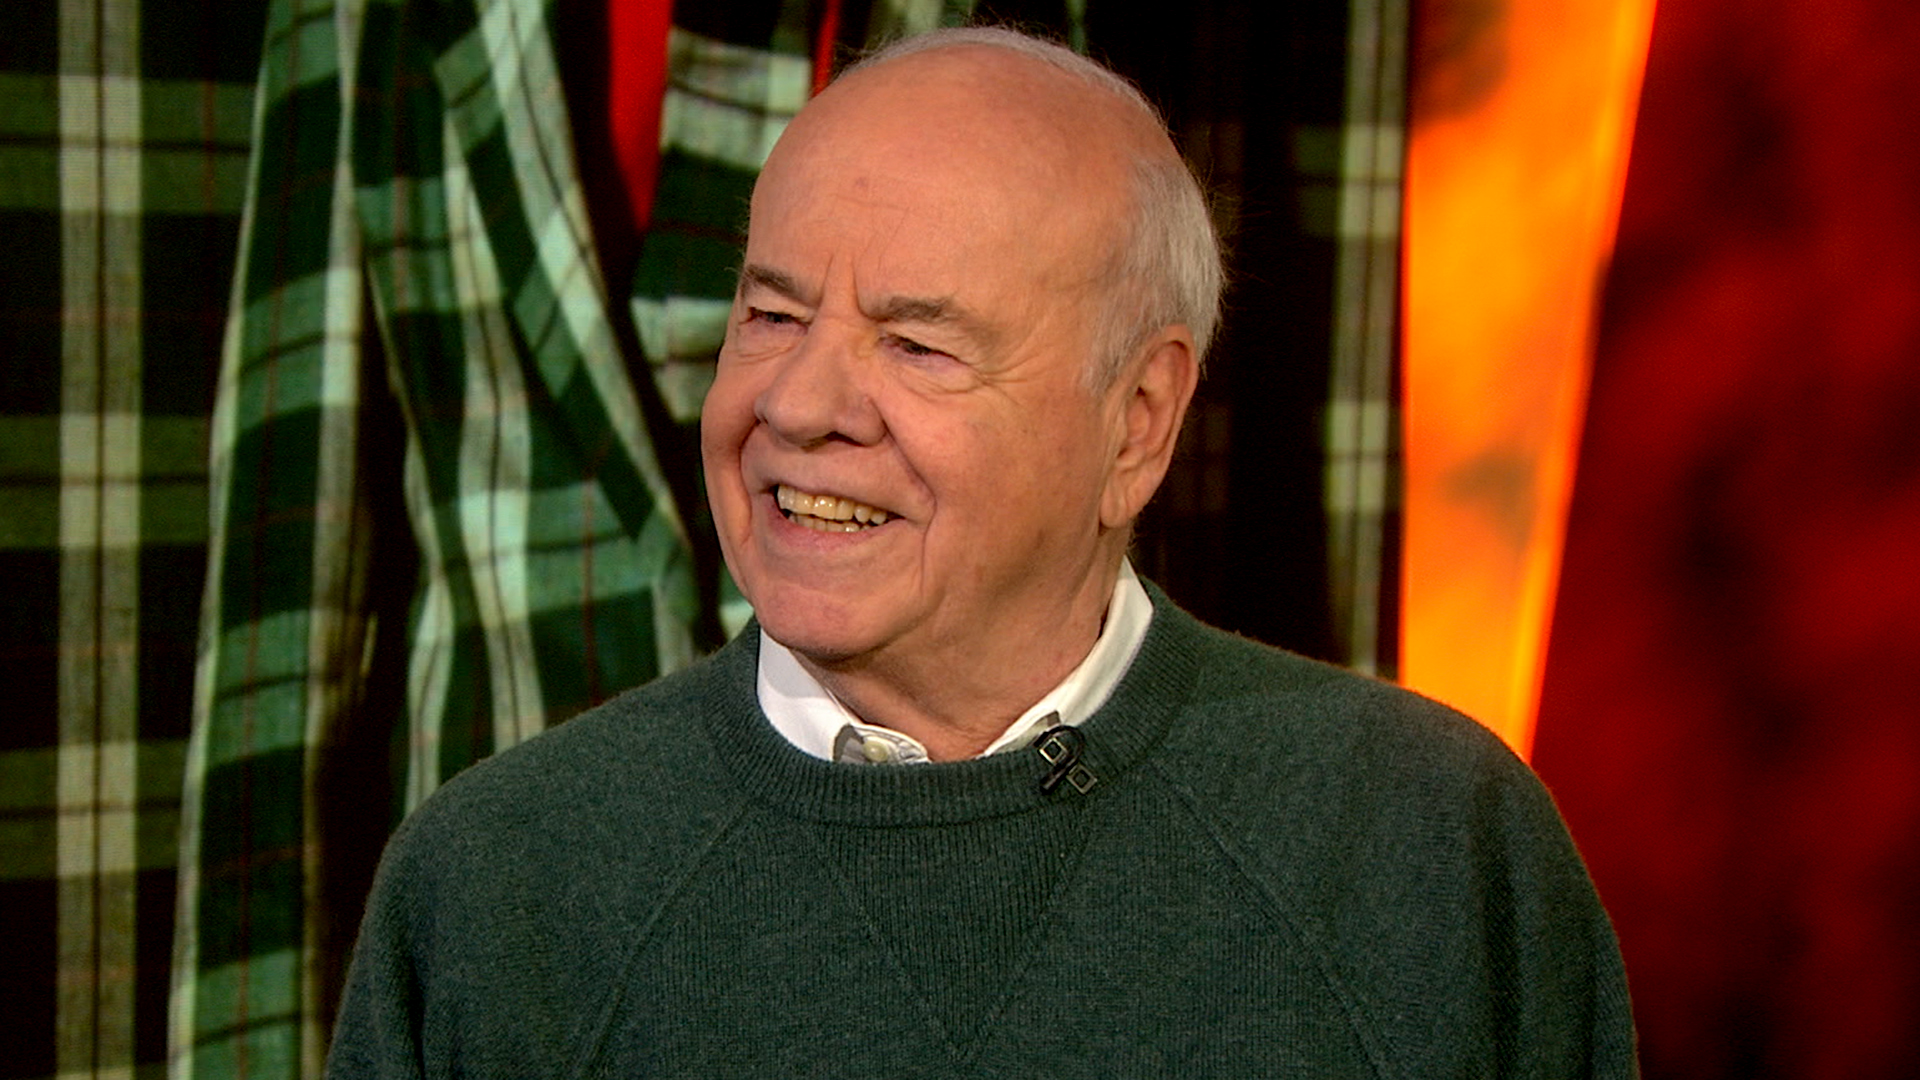 tim conway says dyslexia led him to a life in comedy